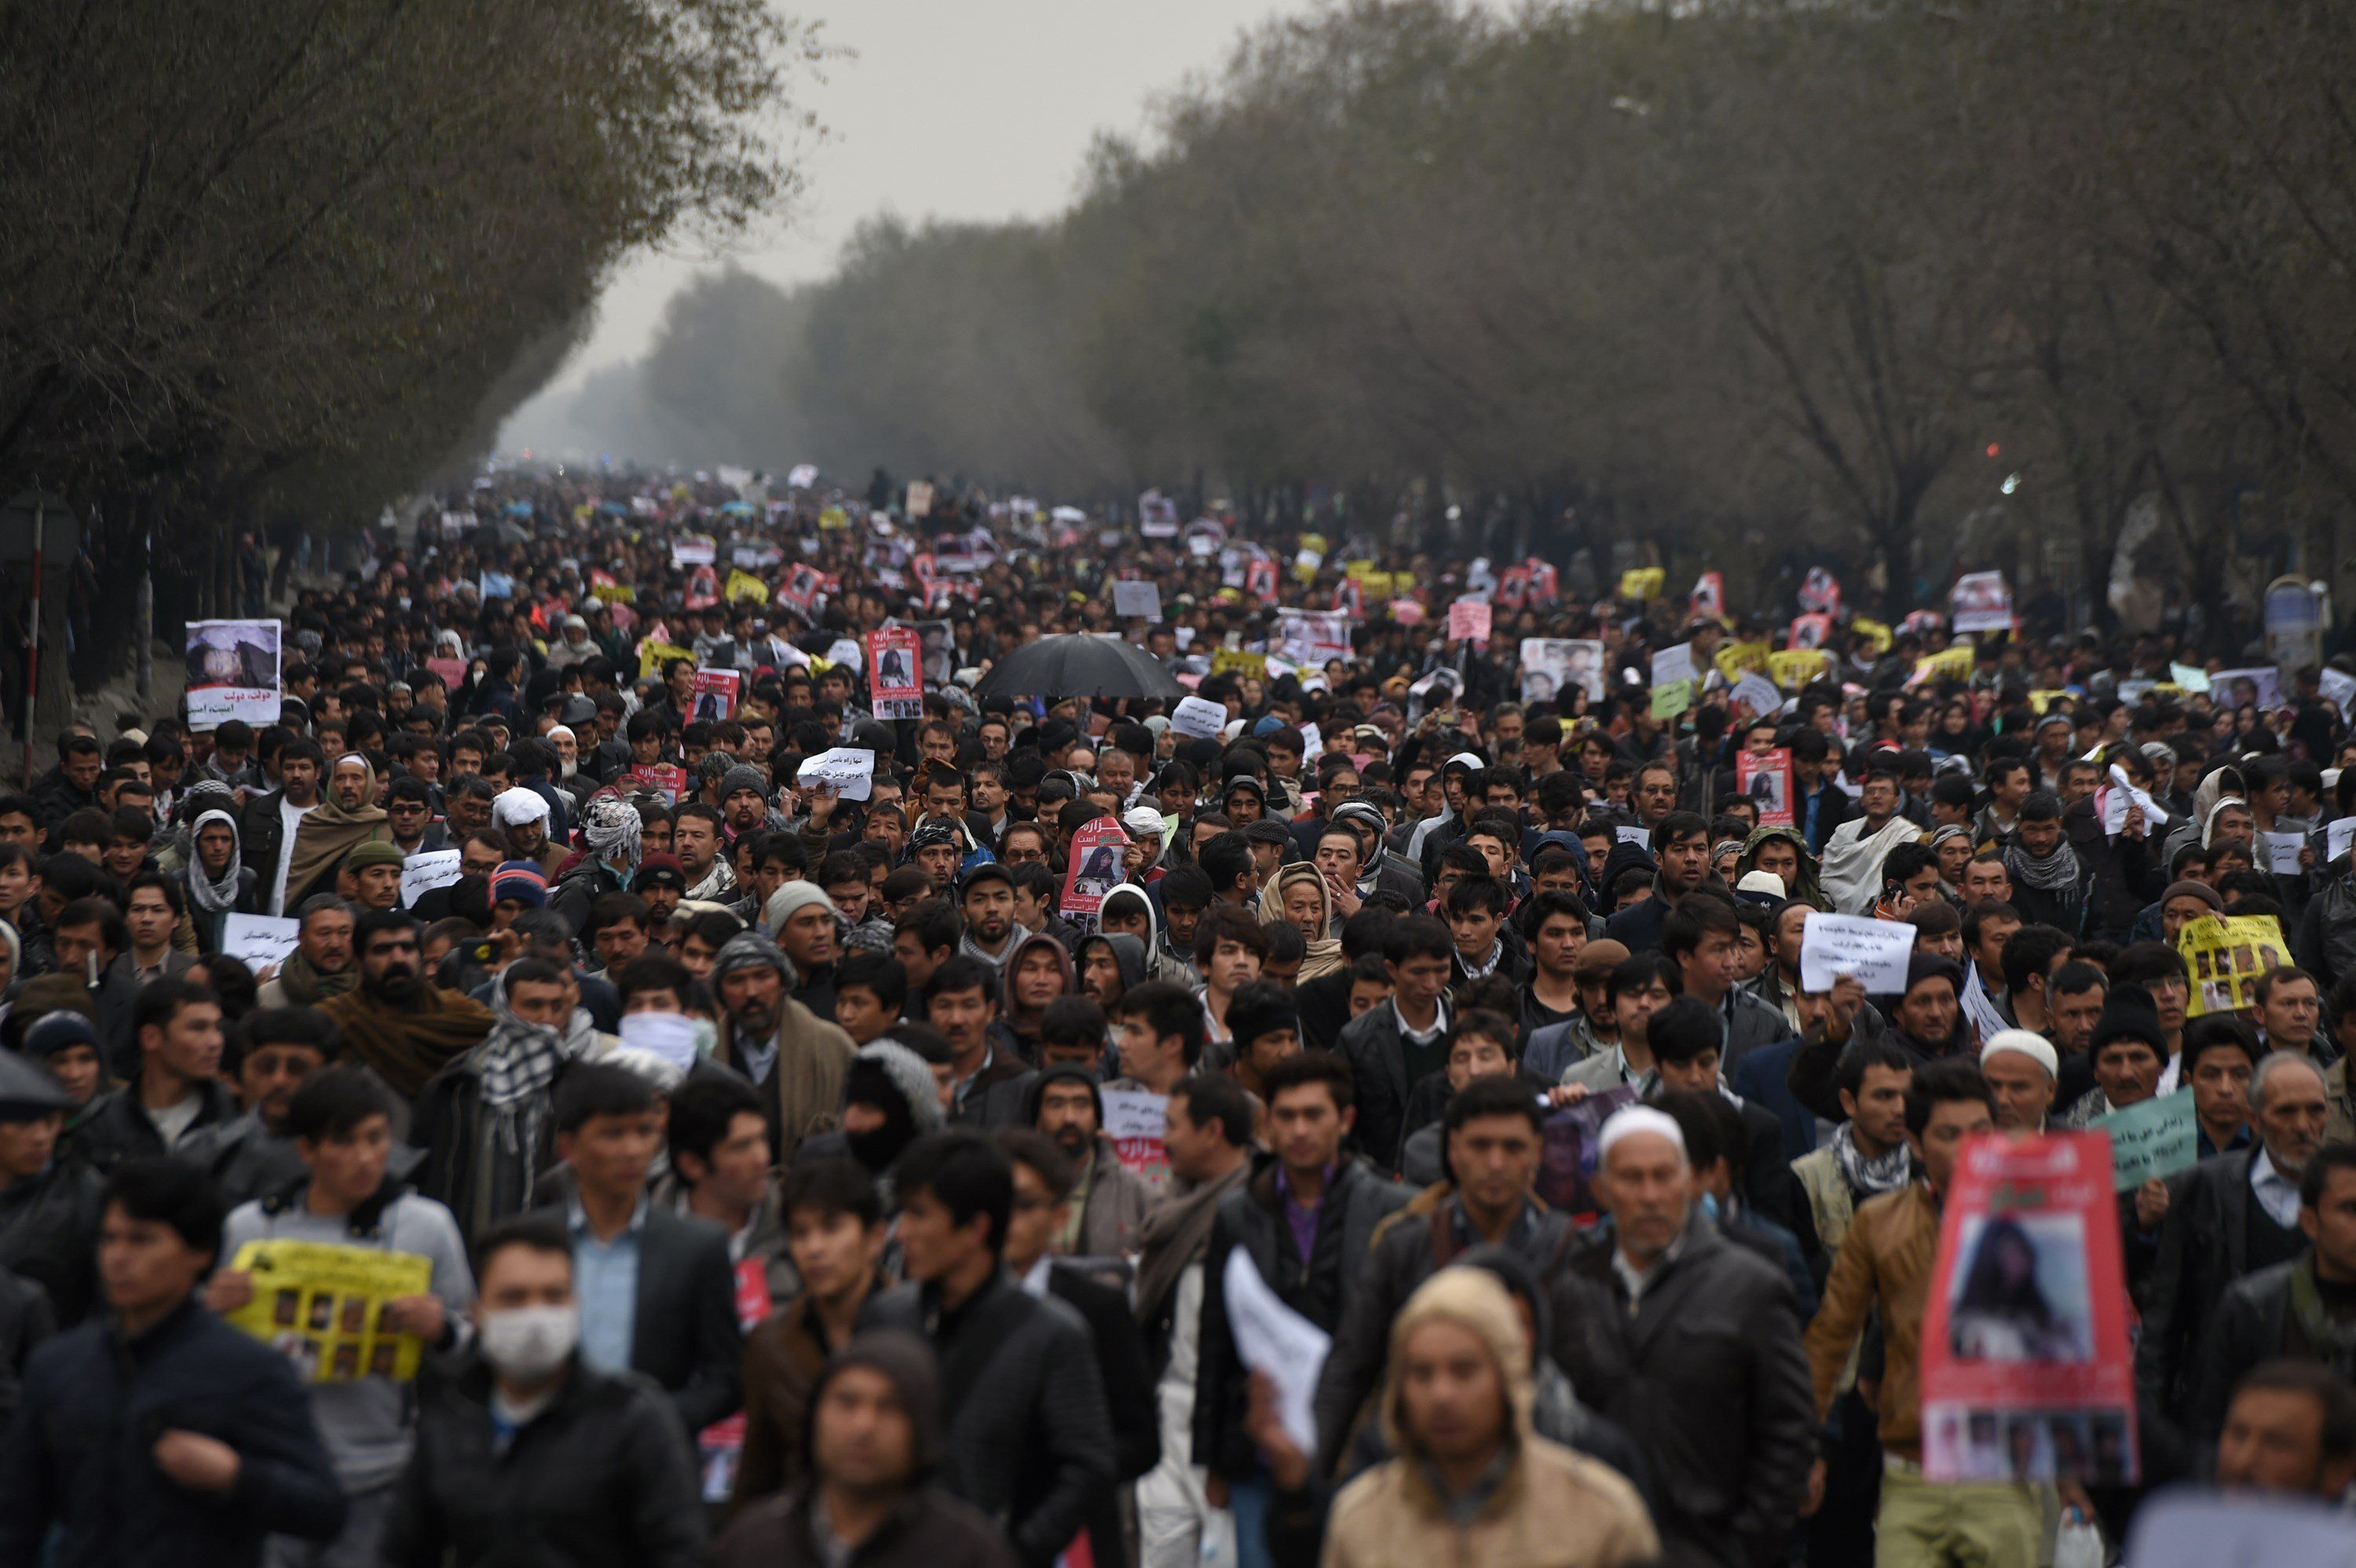 Afghan protesters march during a demonstration, over the killing of seven Shiite Hazaras, in Kabul on November 11, 2015. Thousands of protesters marched coffins containing the decapitated bodies of seven Shiite Hazaras through the Afghan capital Kabul on November 11 to demand justice for the gruesome beheadings, which prompted fears of sectarian bloodshed in the war-torn country. Demonstrators gathered in the rain in west Kabul and marched towards the city centre, chanting death slogans to the Taliban and the Islamic State group while demanding justice and protection from the government. AFP PHOTO / SHAH Marai        (Photo credit should read SHAH MARAI/AFP/Getty Images)